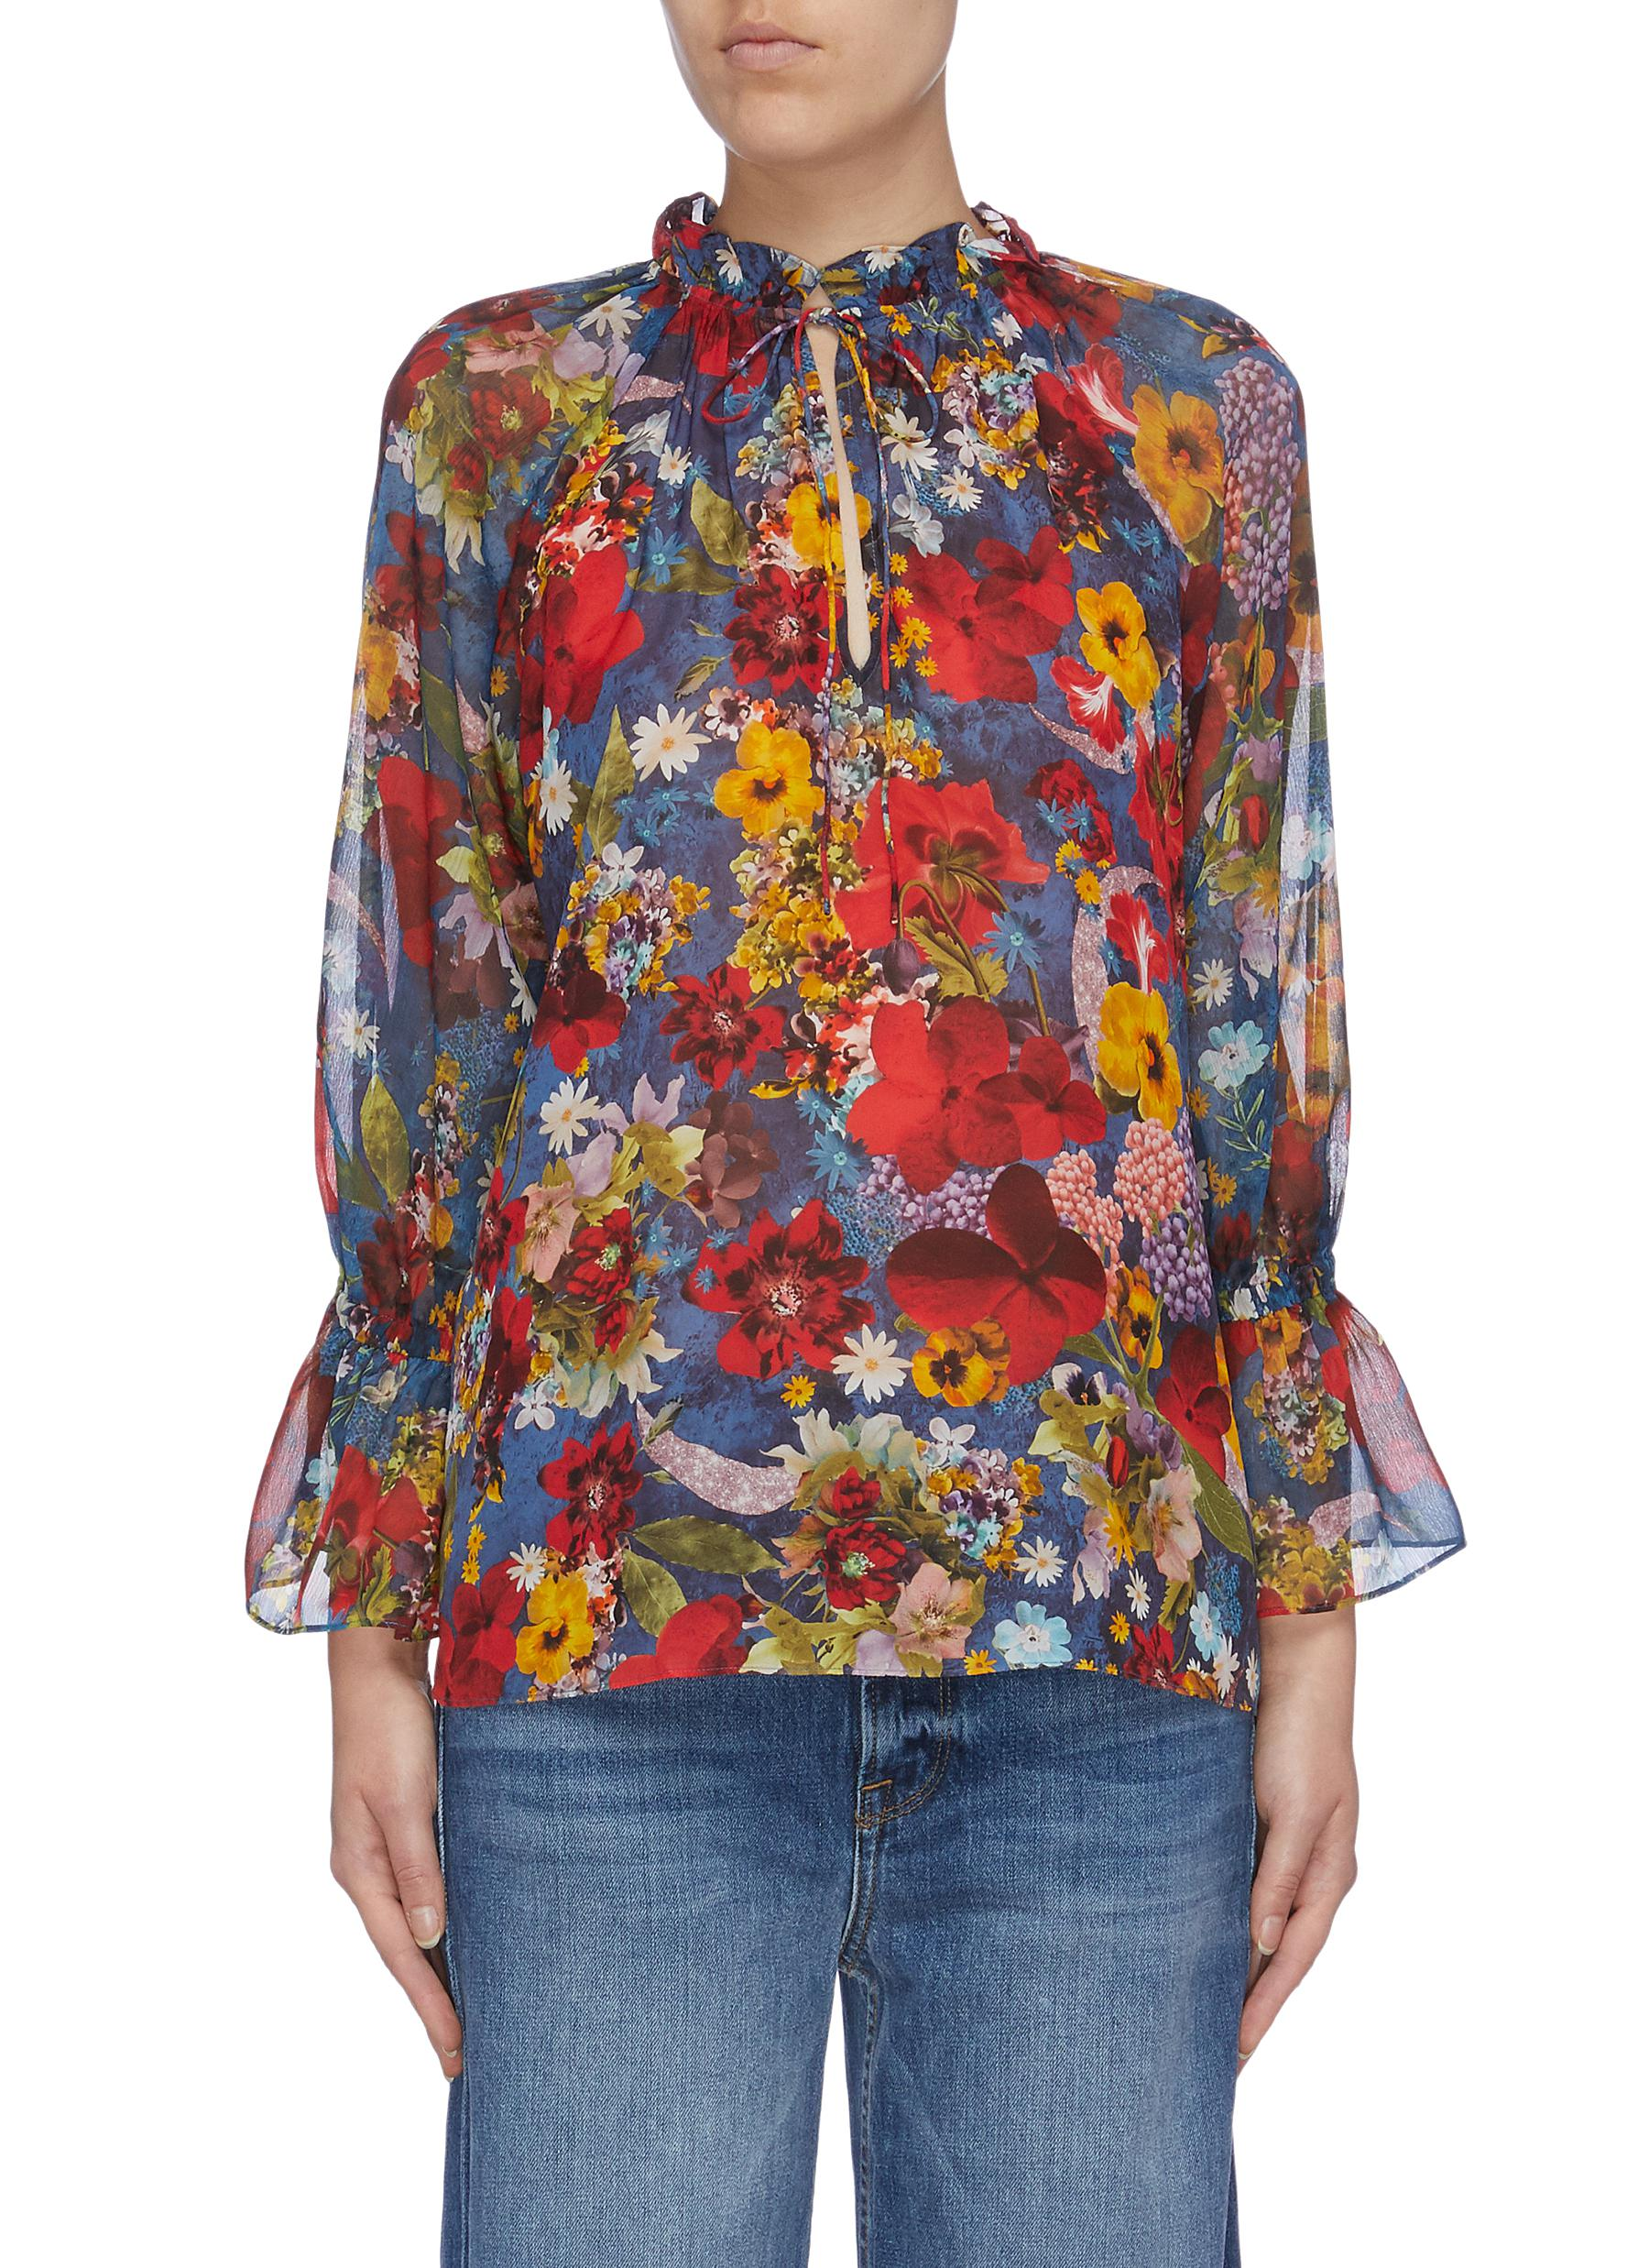 Julius tie flared cuff floral photographic print top by Alice + Olivia